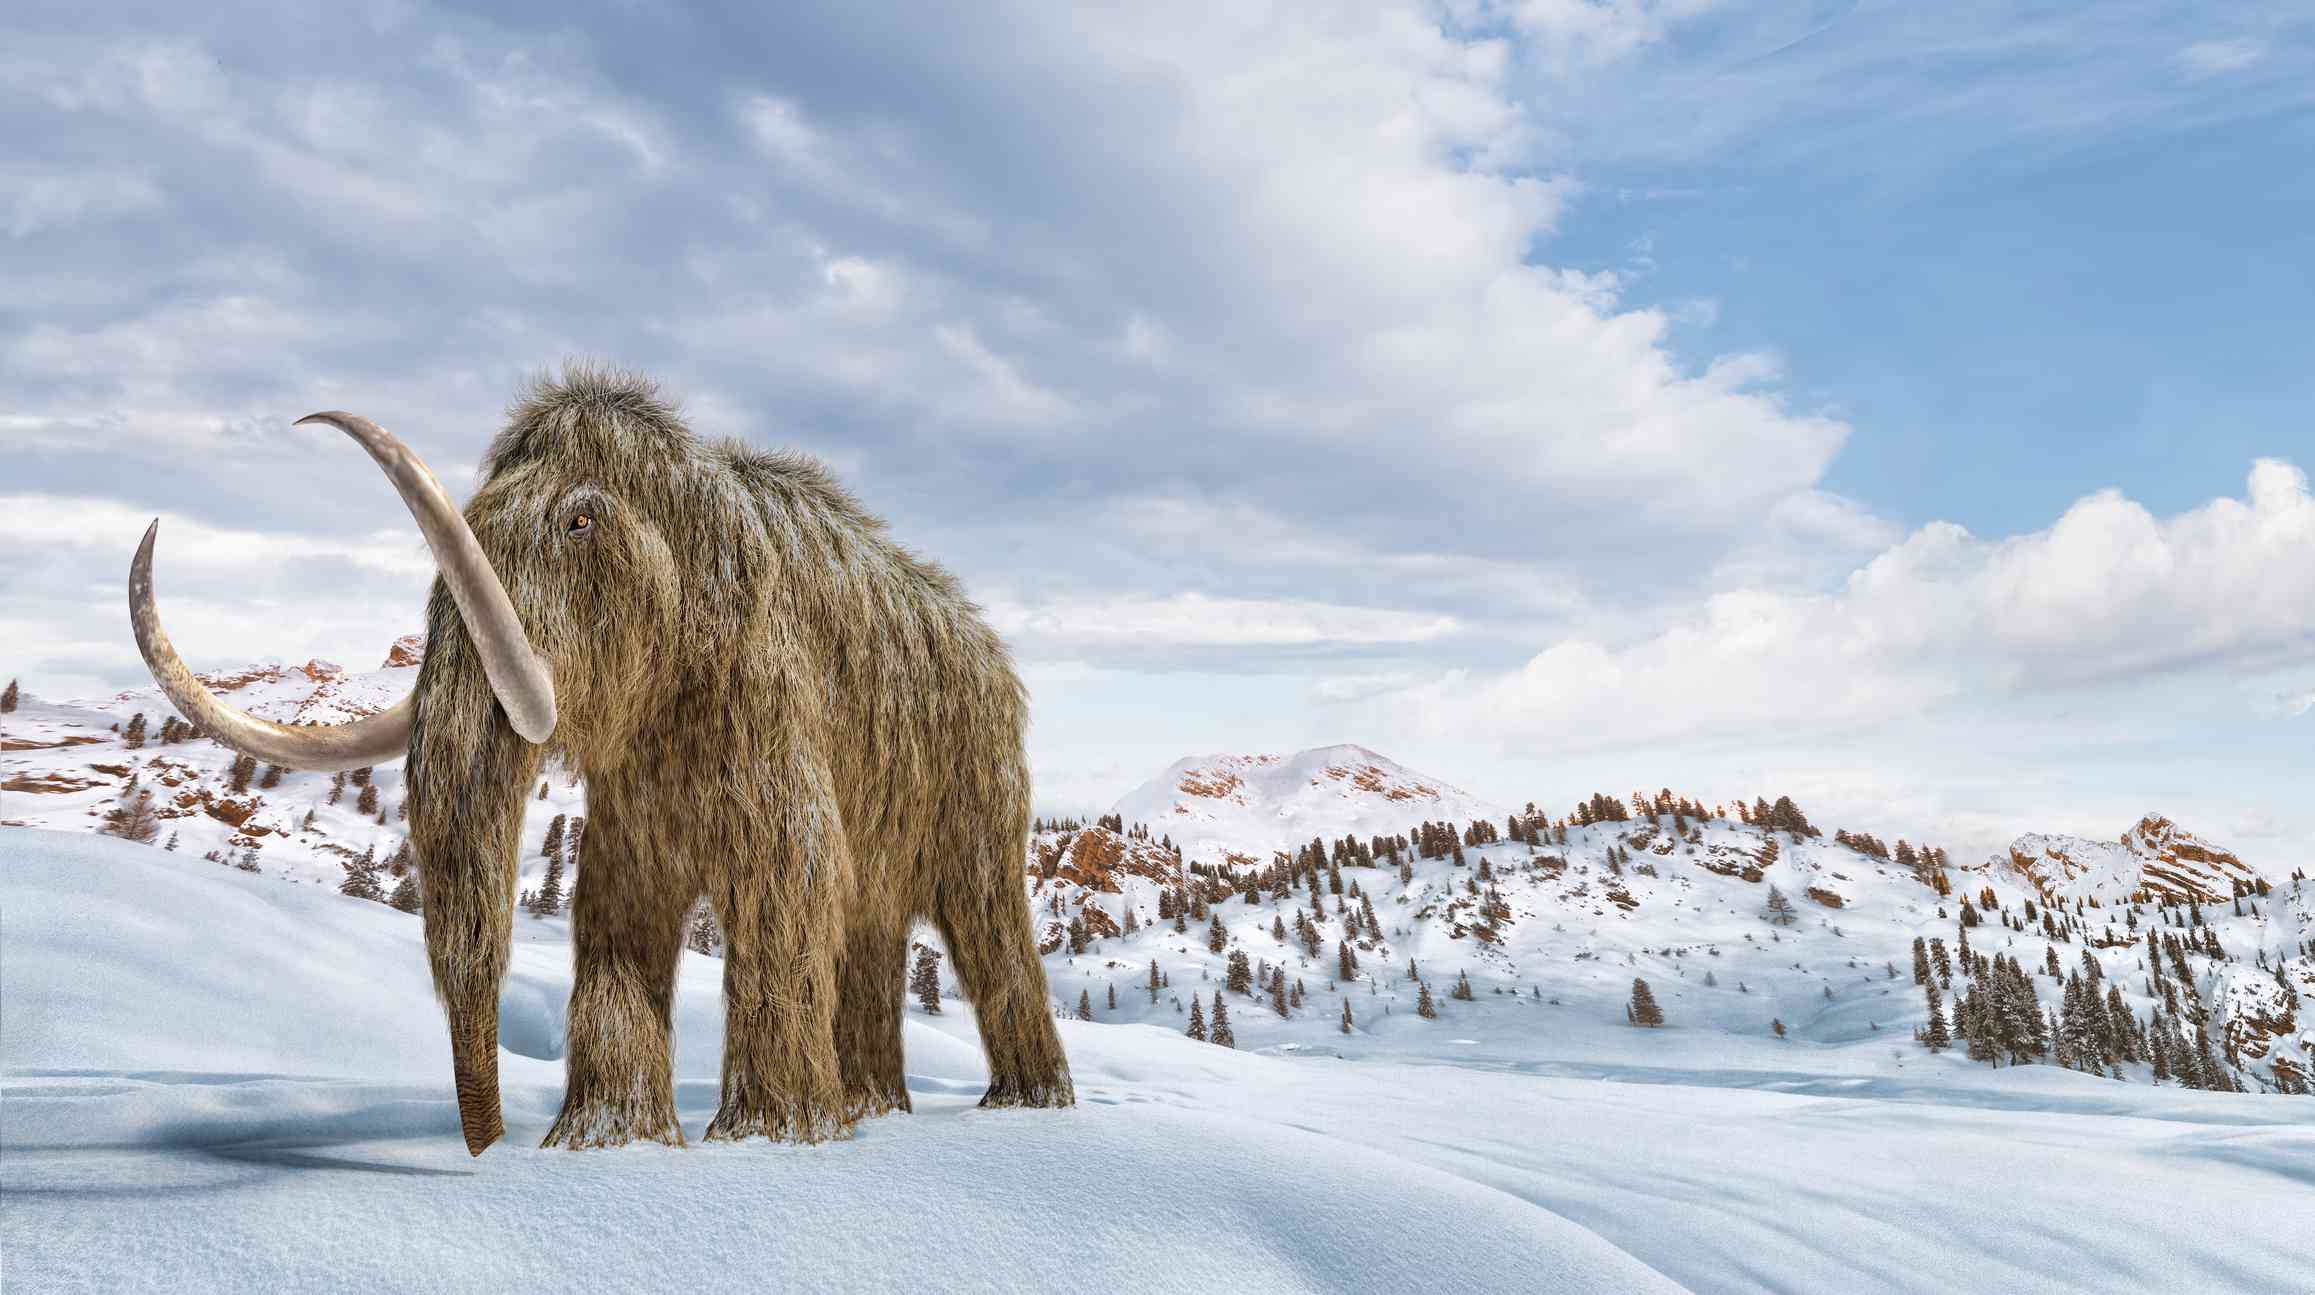 Woolly mammoth in snow, illustration